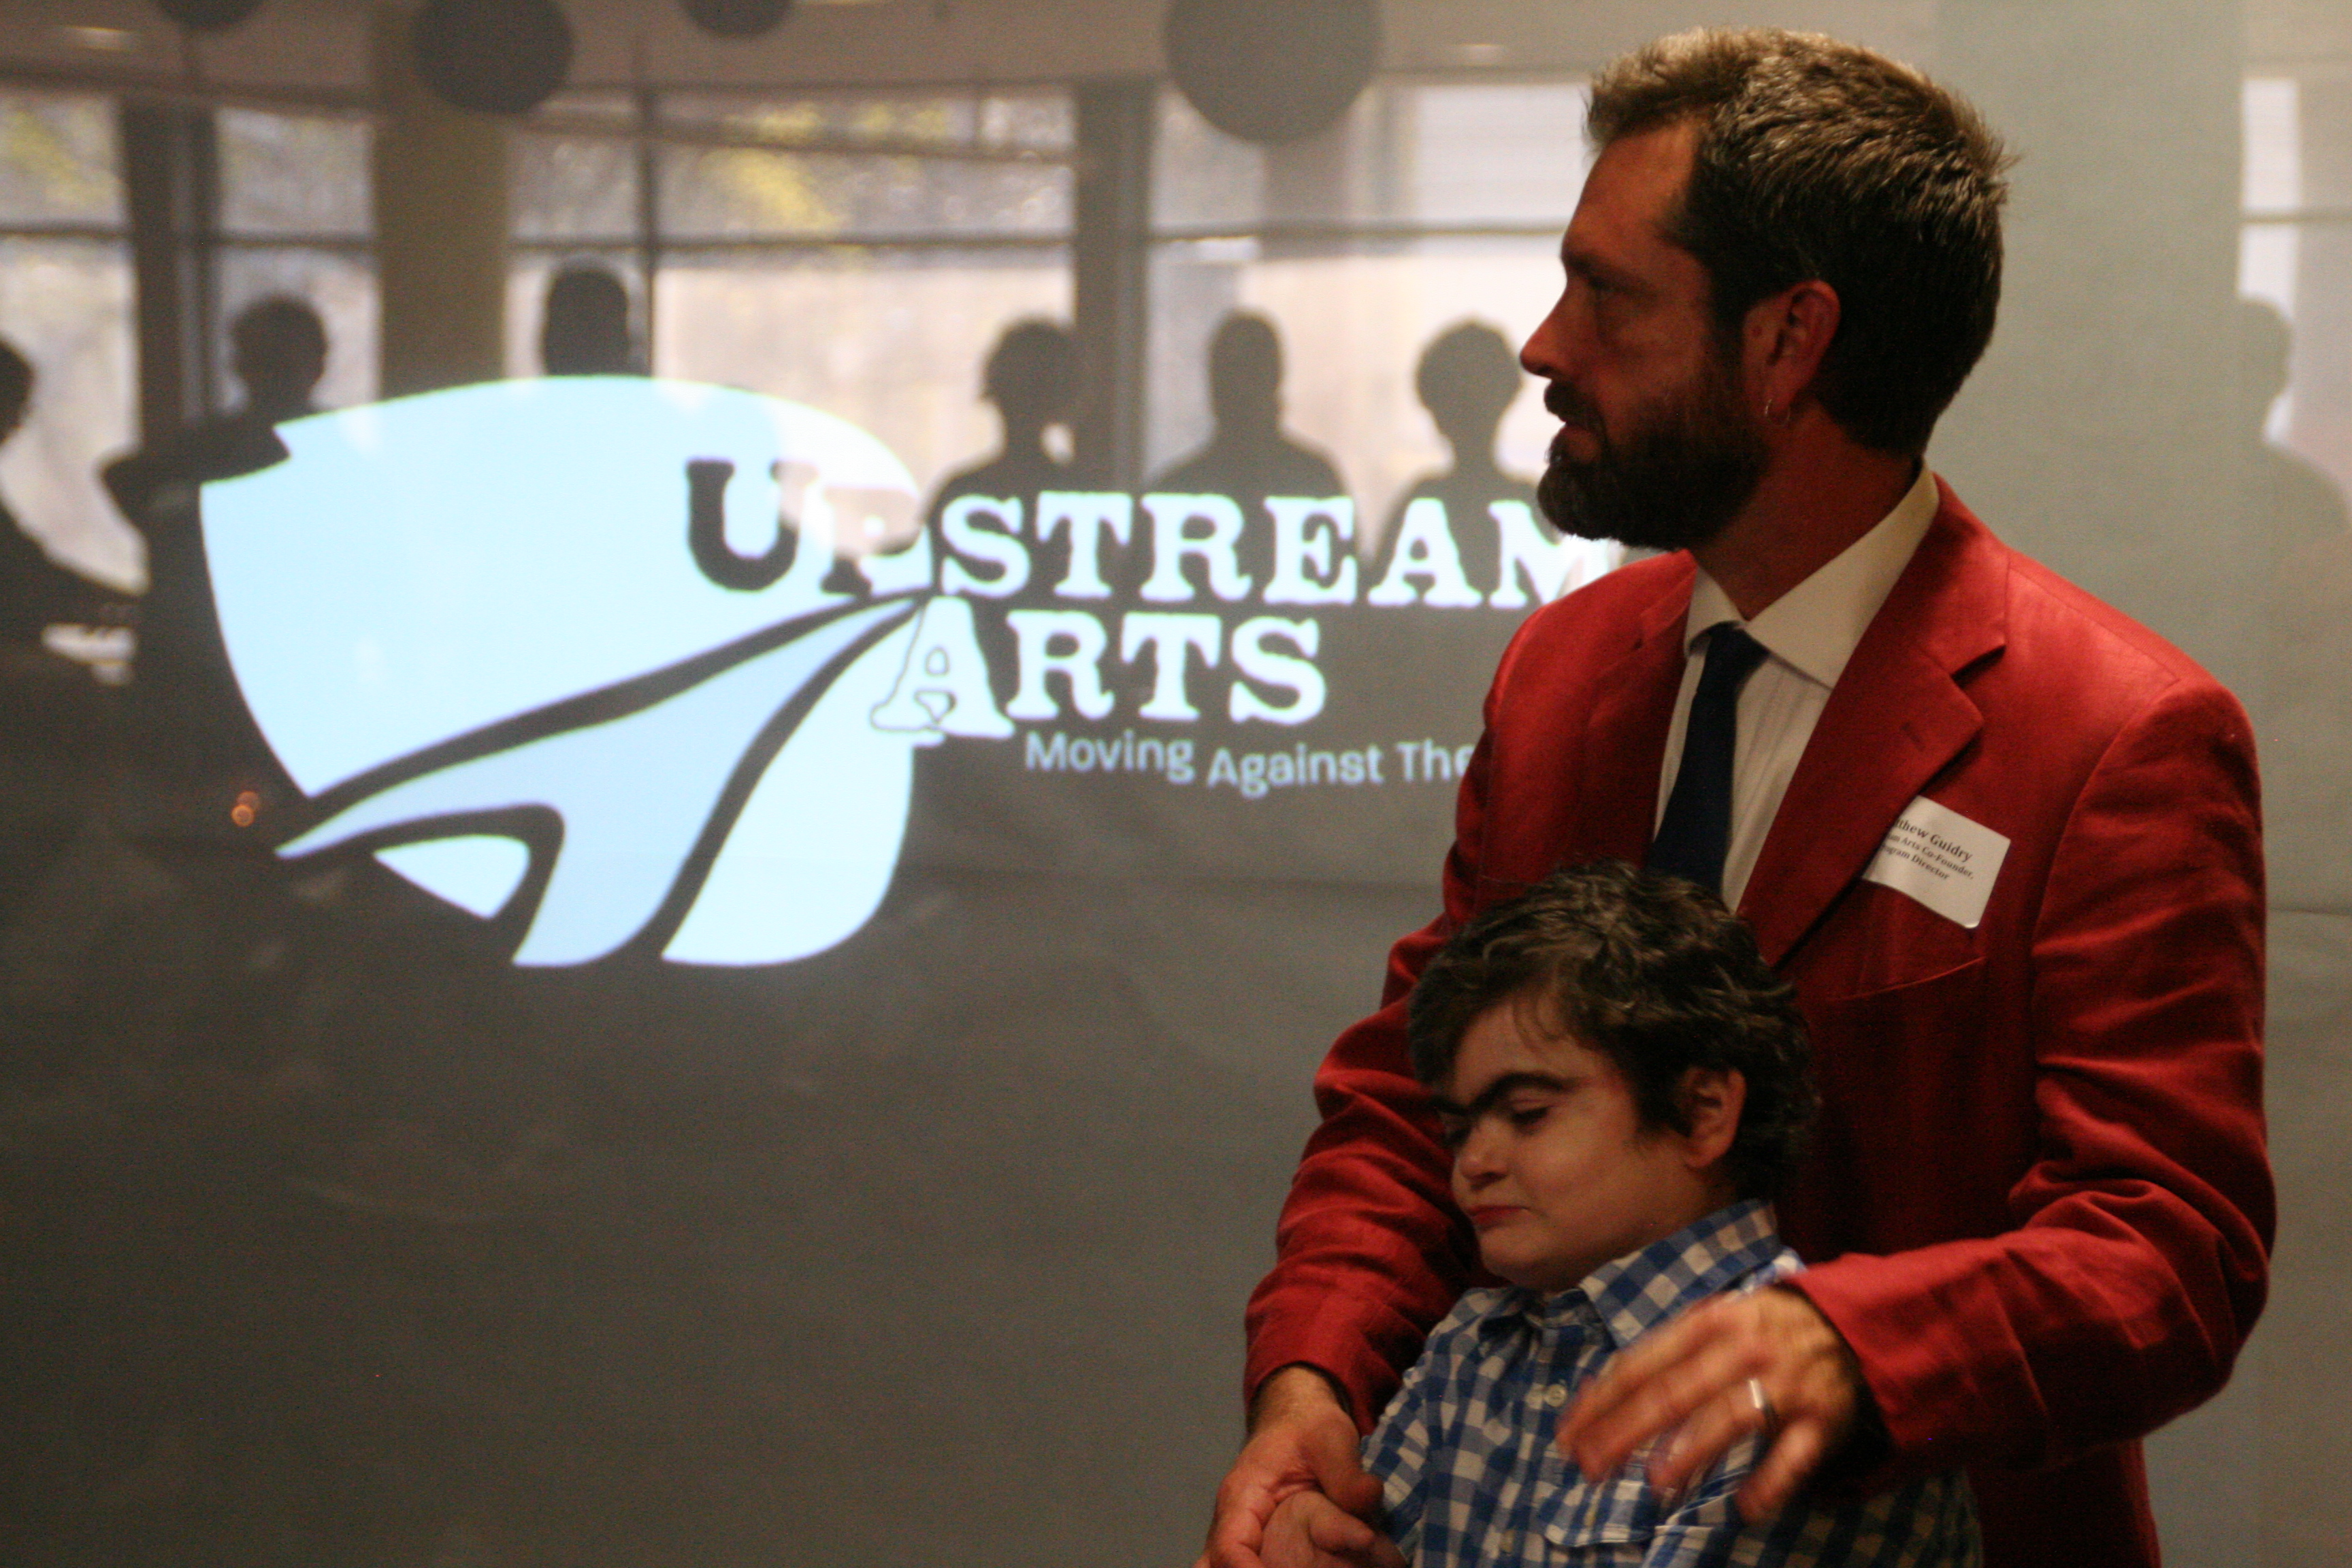 Matt and Caleb at Upstream Arts' first Annual Meeting and Fundraiser, 2014. Image by David Luke.